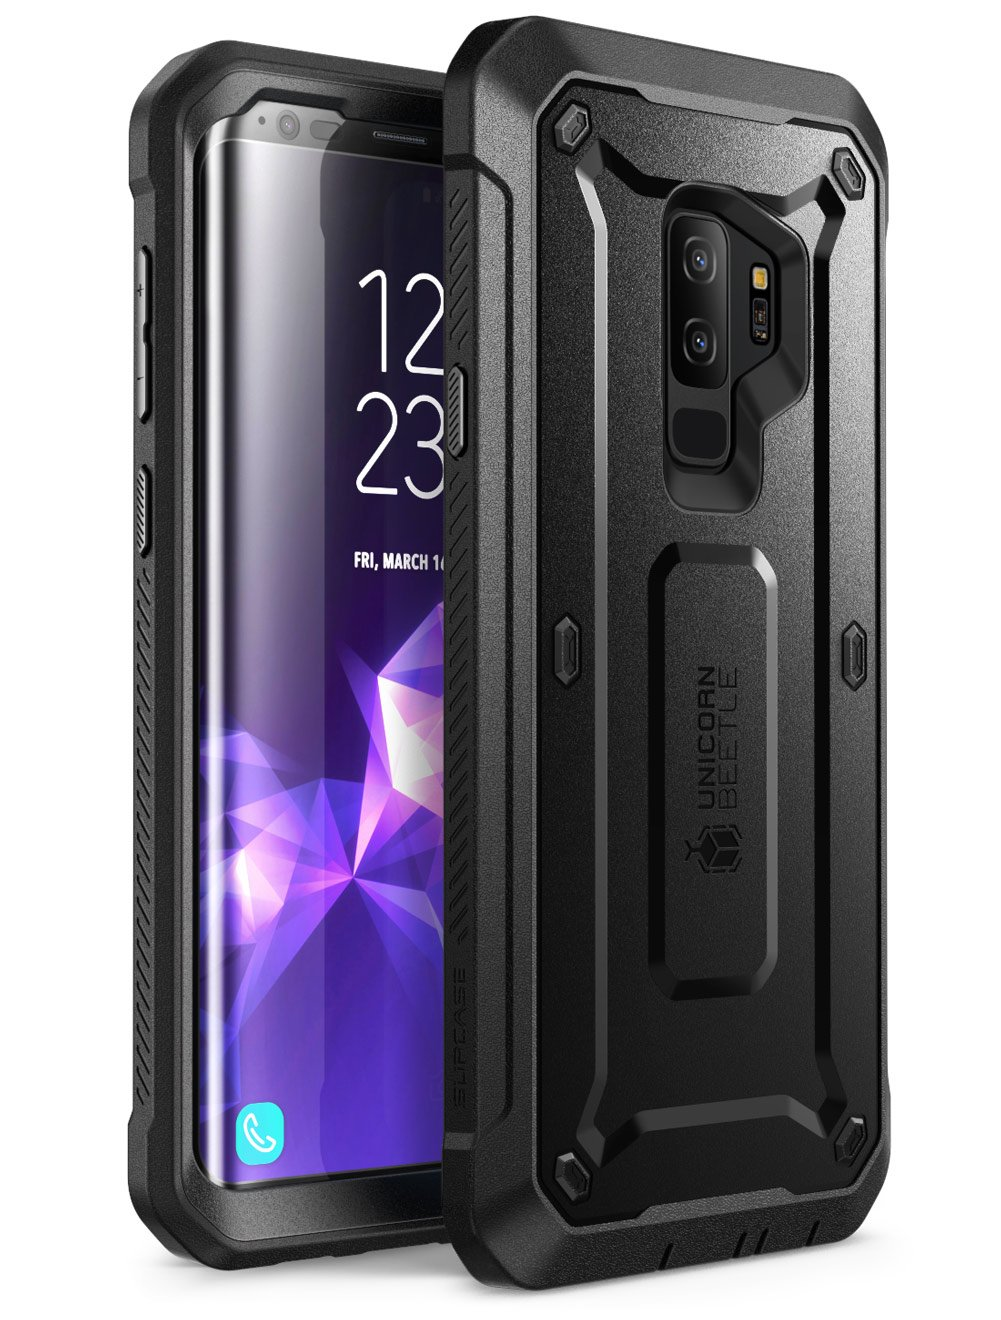 Samsung Galaxy S9+ Plus Case, SUPCASE Full-body Rugged Holster Case with Built-in Screen Protector for Galaxy S9+ Plus (2018 Release), Unicorn Beetle PRO Series - Retail Package (Black)